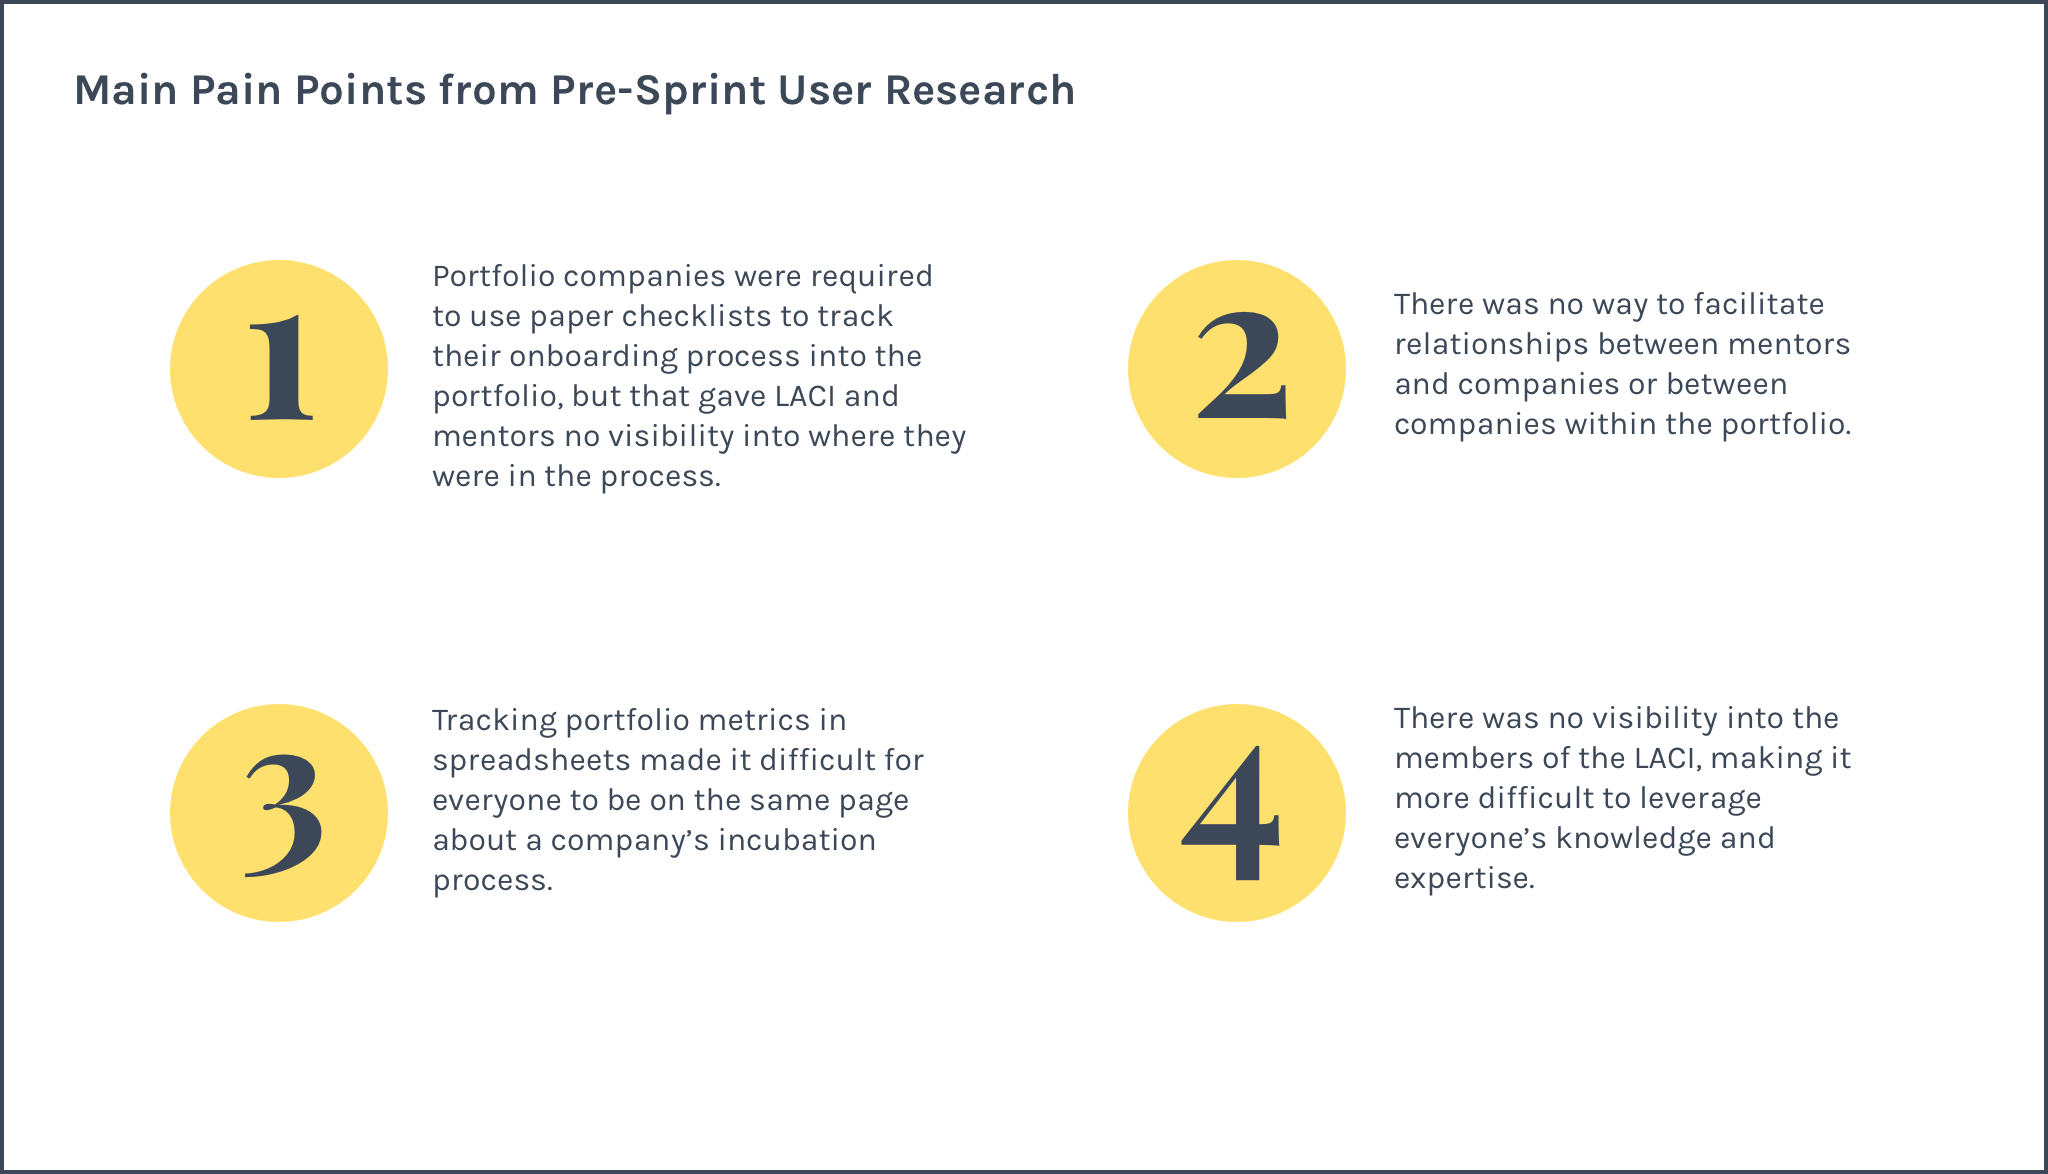 4 main pain points from pre-sprint user research